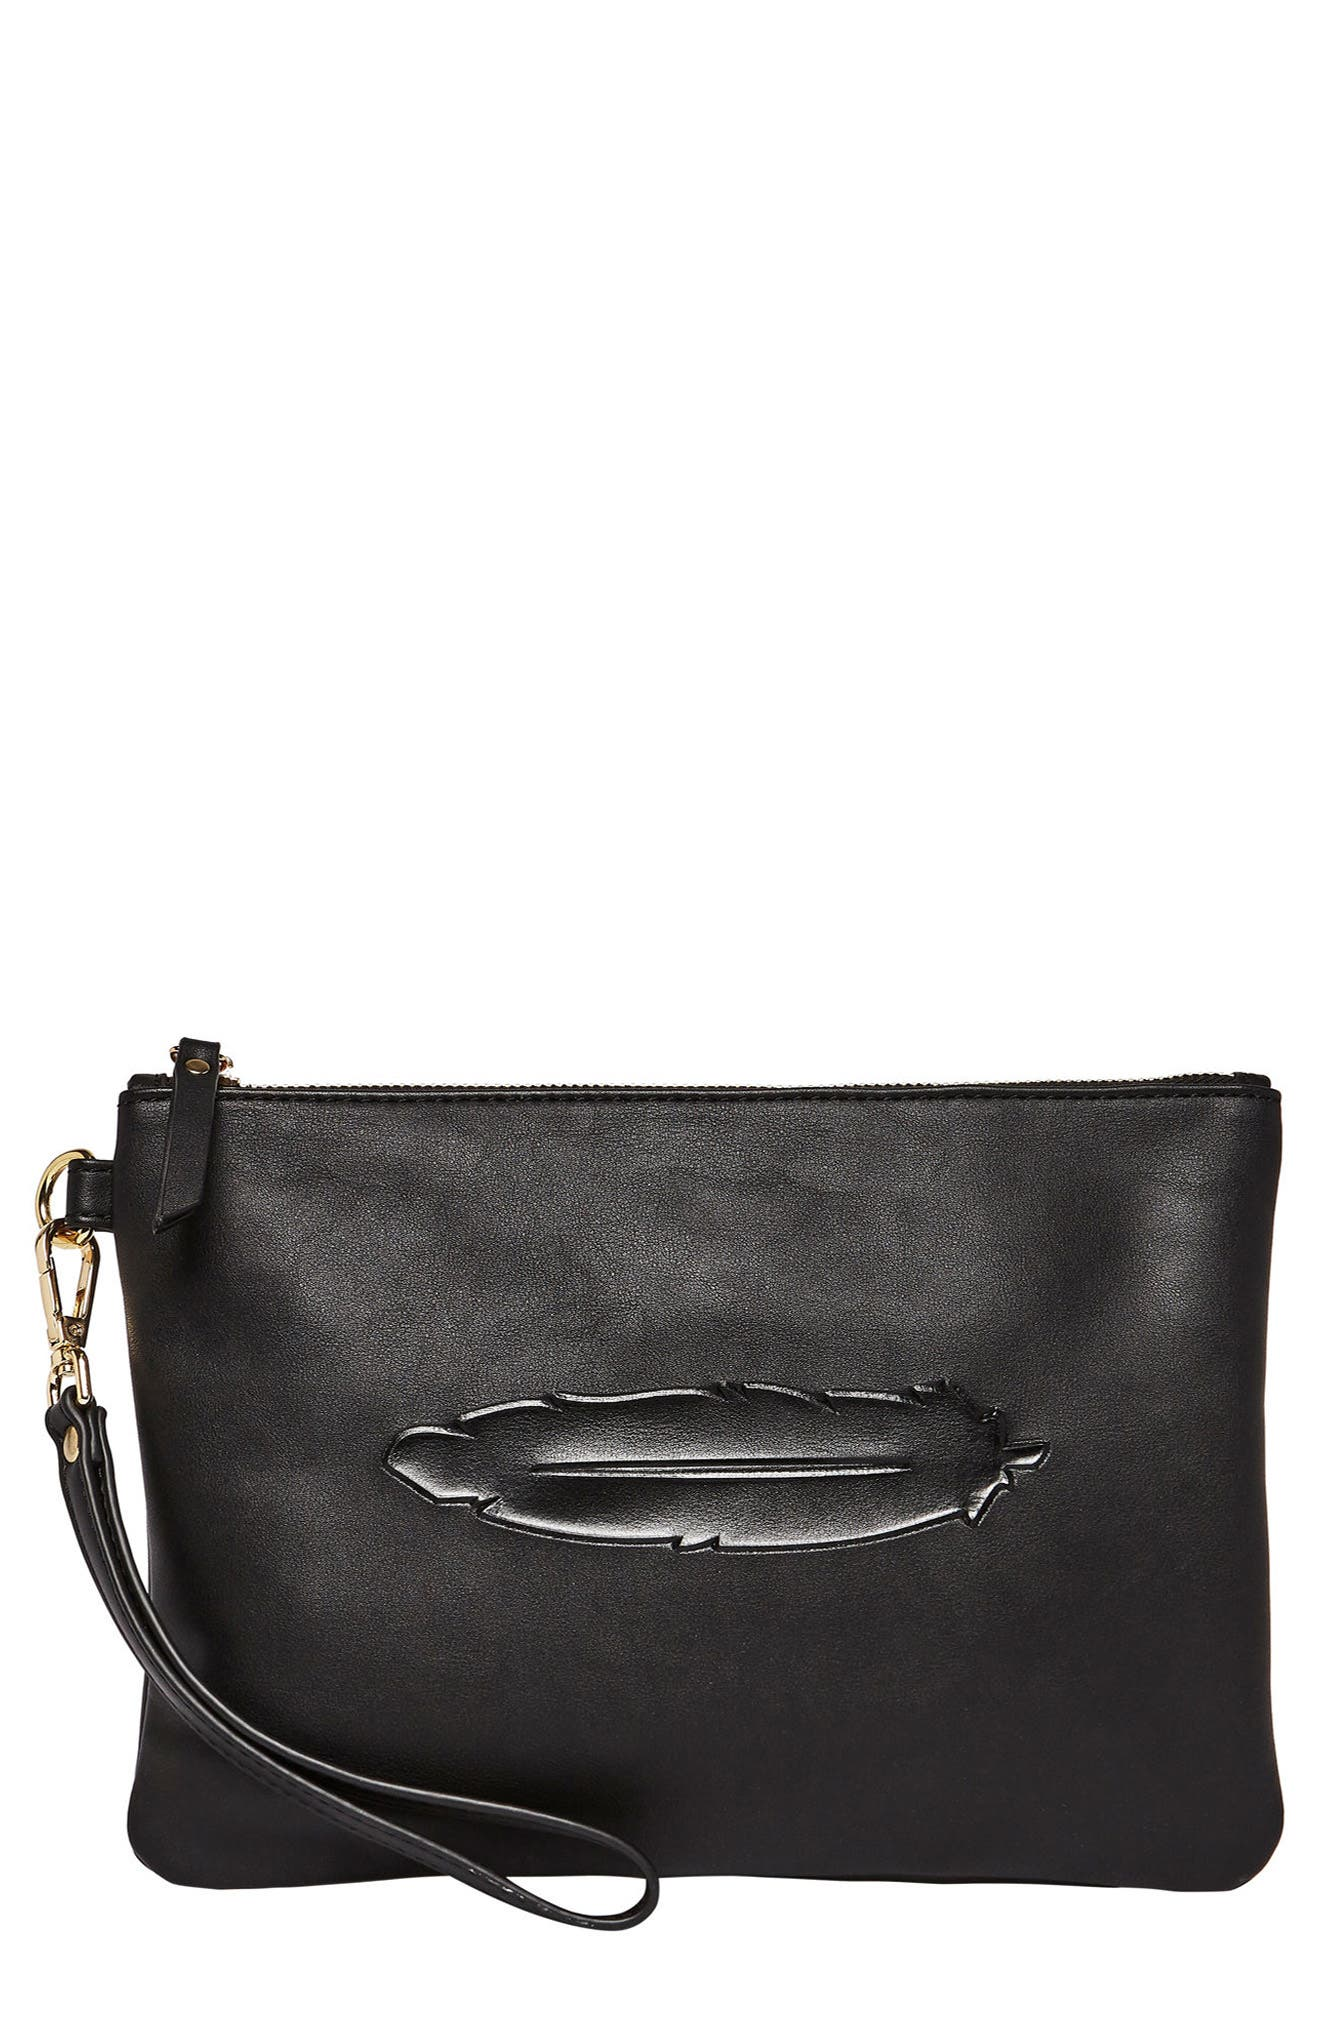 Clutch to Dream Vegan Leather Clutch,                         Main,                         color,